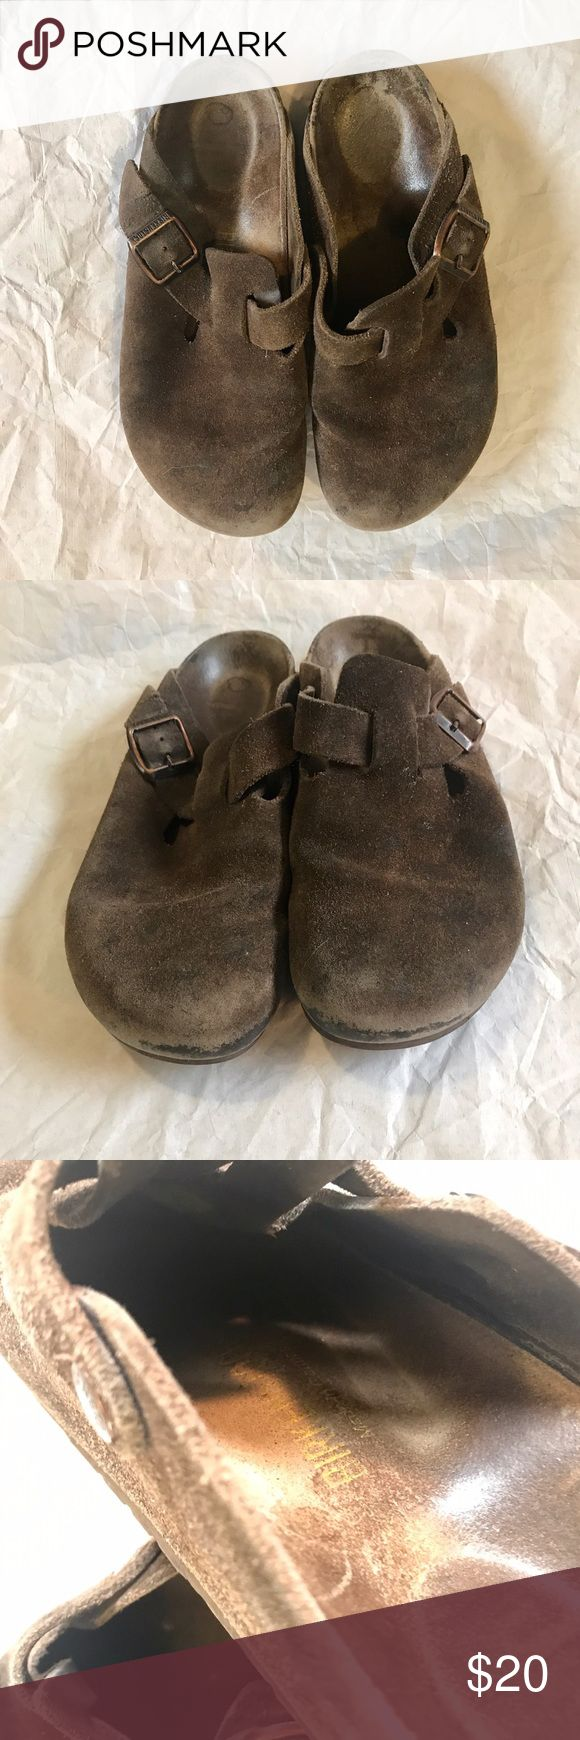 Birkenstock 37 clogs Birkenstock chocolate brown clogs in EU size 37. Pre-owned, wear as pictured - discoloration of footbed, wear on soles, wear on suede outer. Reasonable offers accepted! Check out my other listings for a bundle discount! Birkenstock Shoes Mules & Clogs